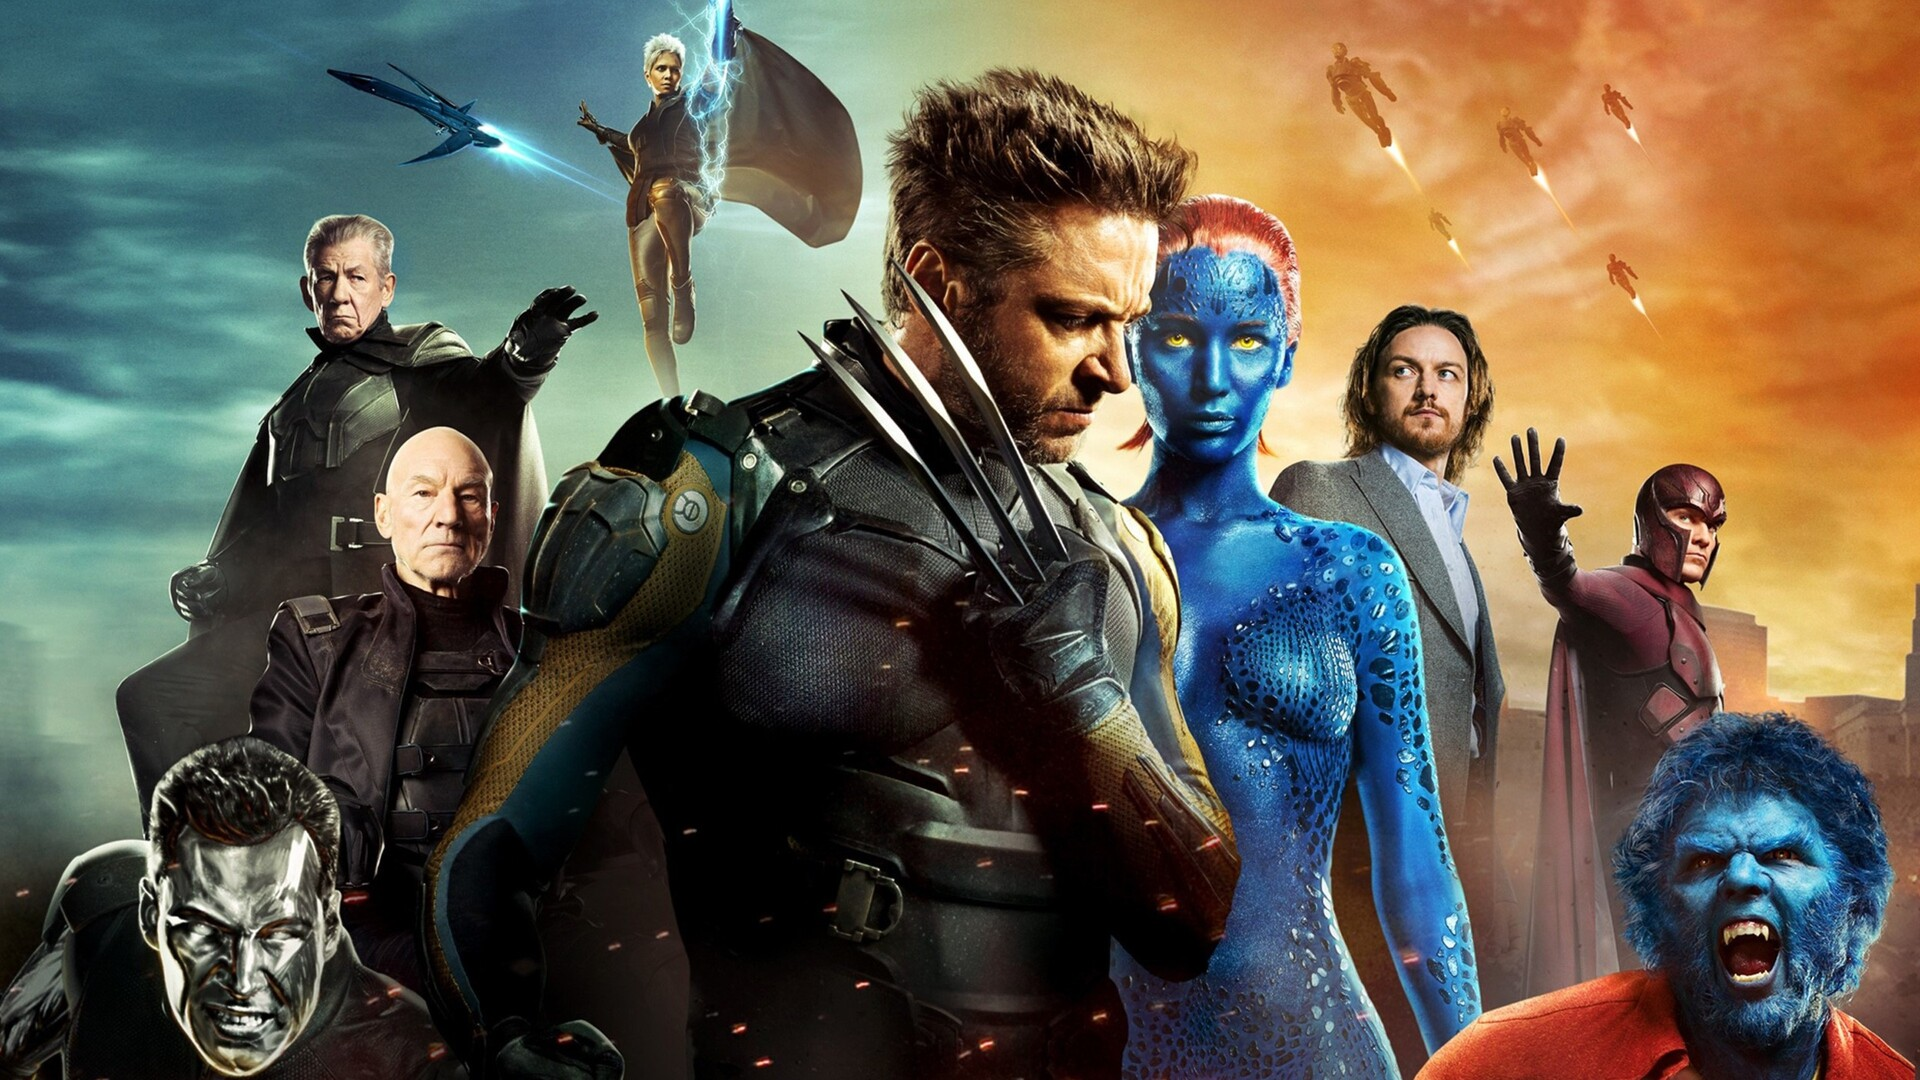 1920x1080 X Men Days Of Future Past Poster Laptop Full Hd 1080p Hd